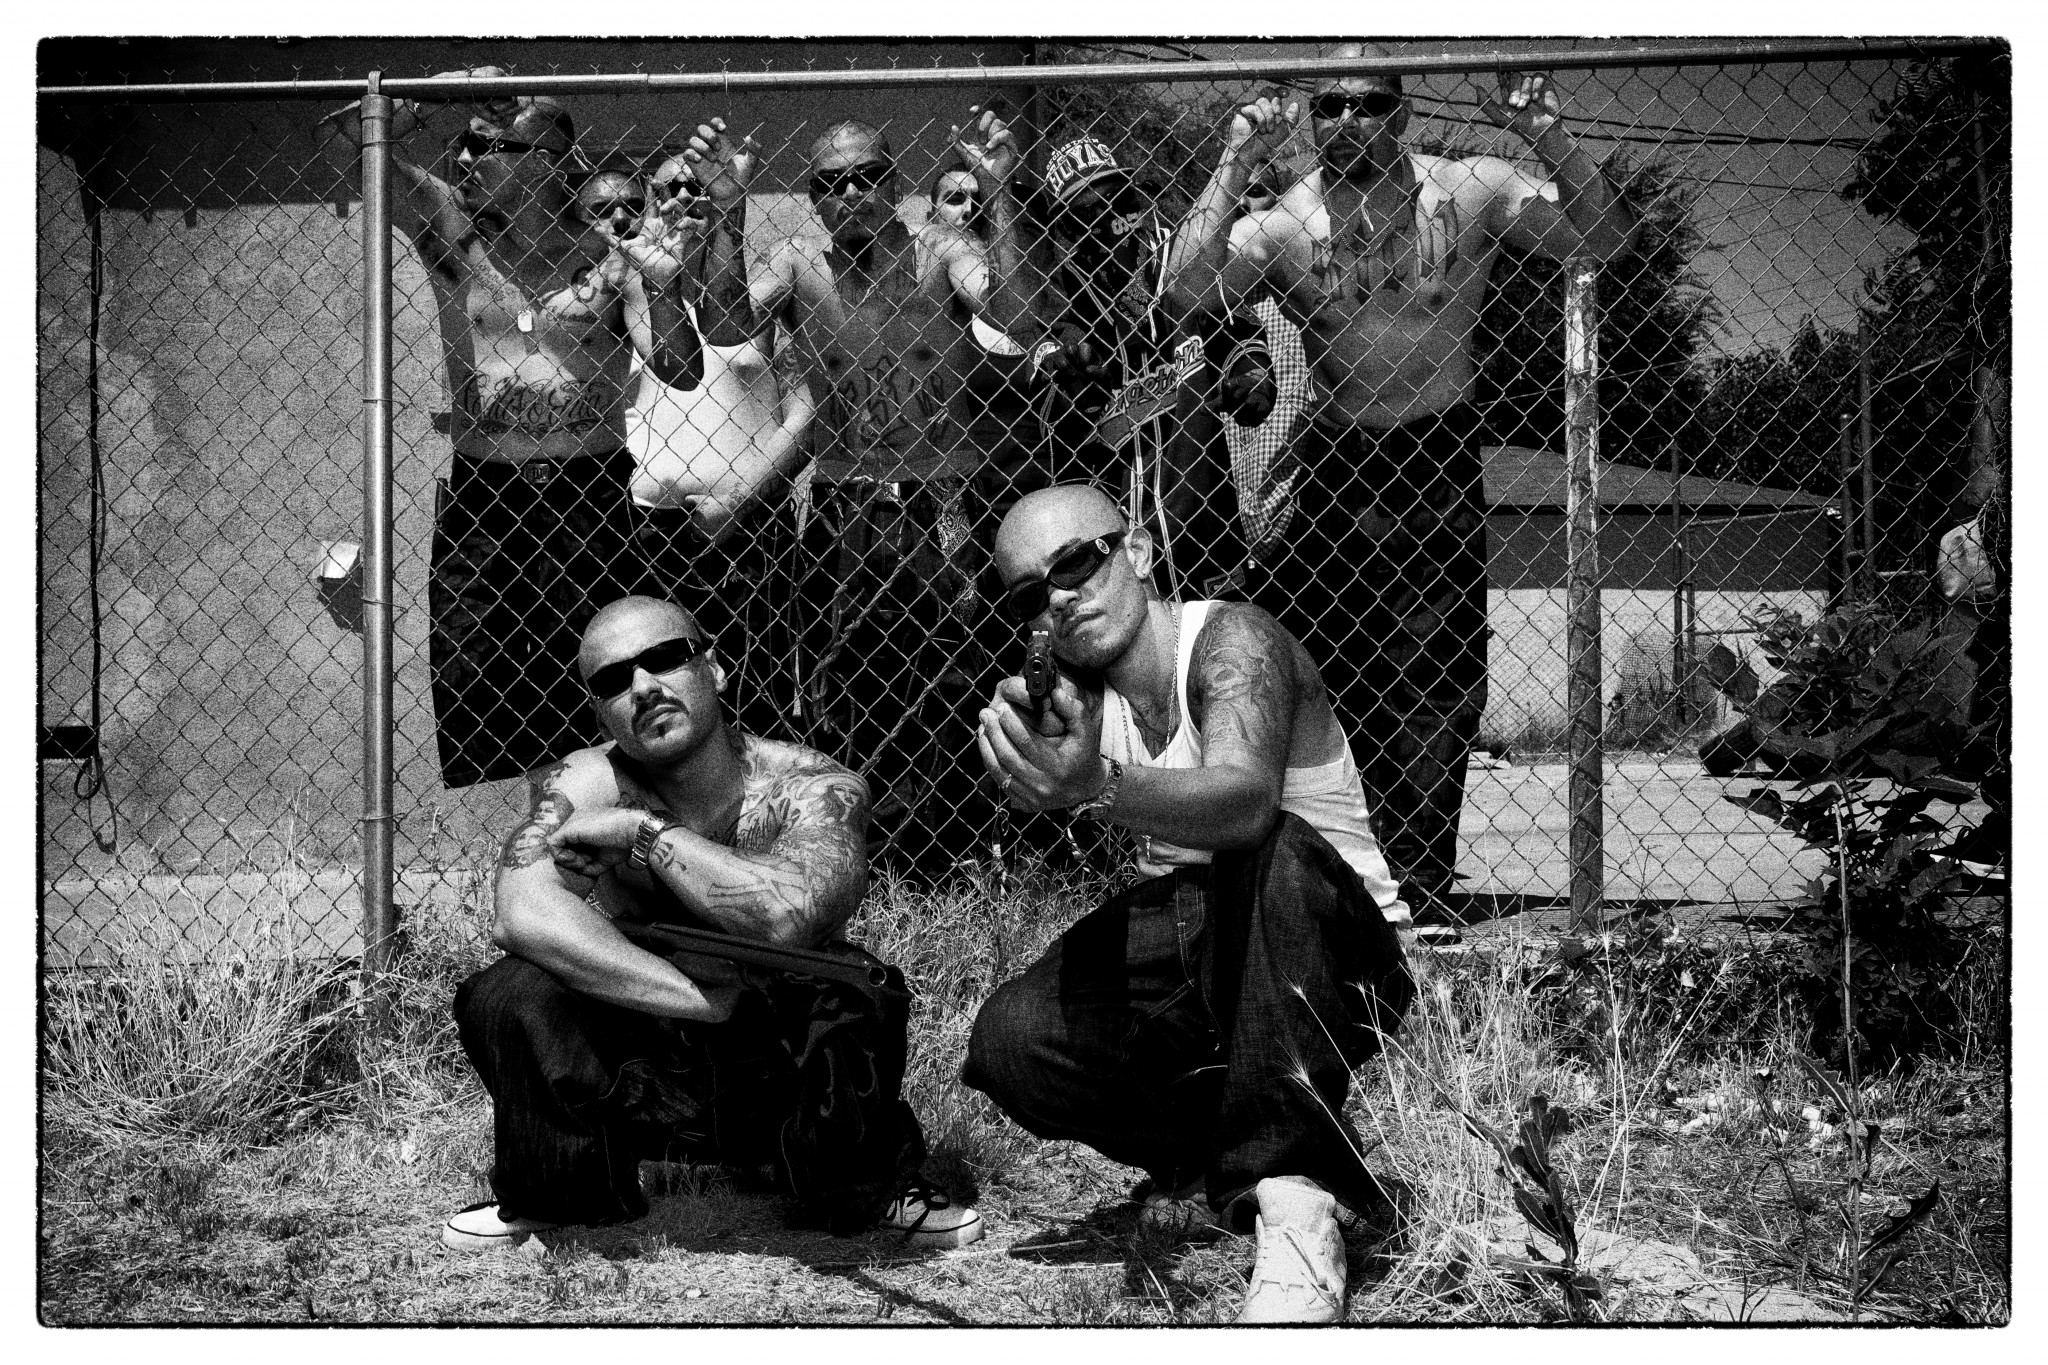 LA gangs as captured by Andres Herren